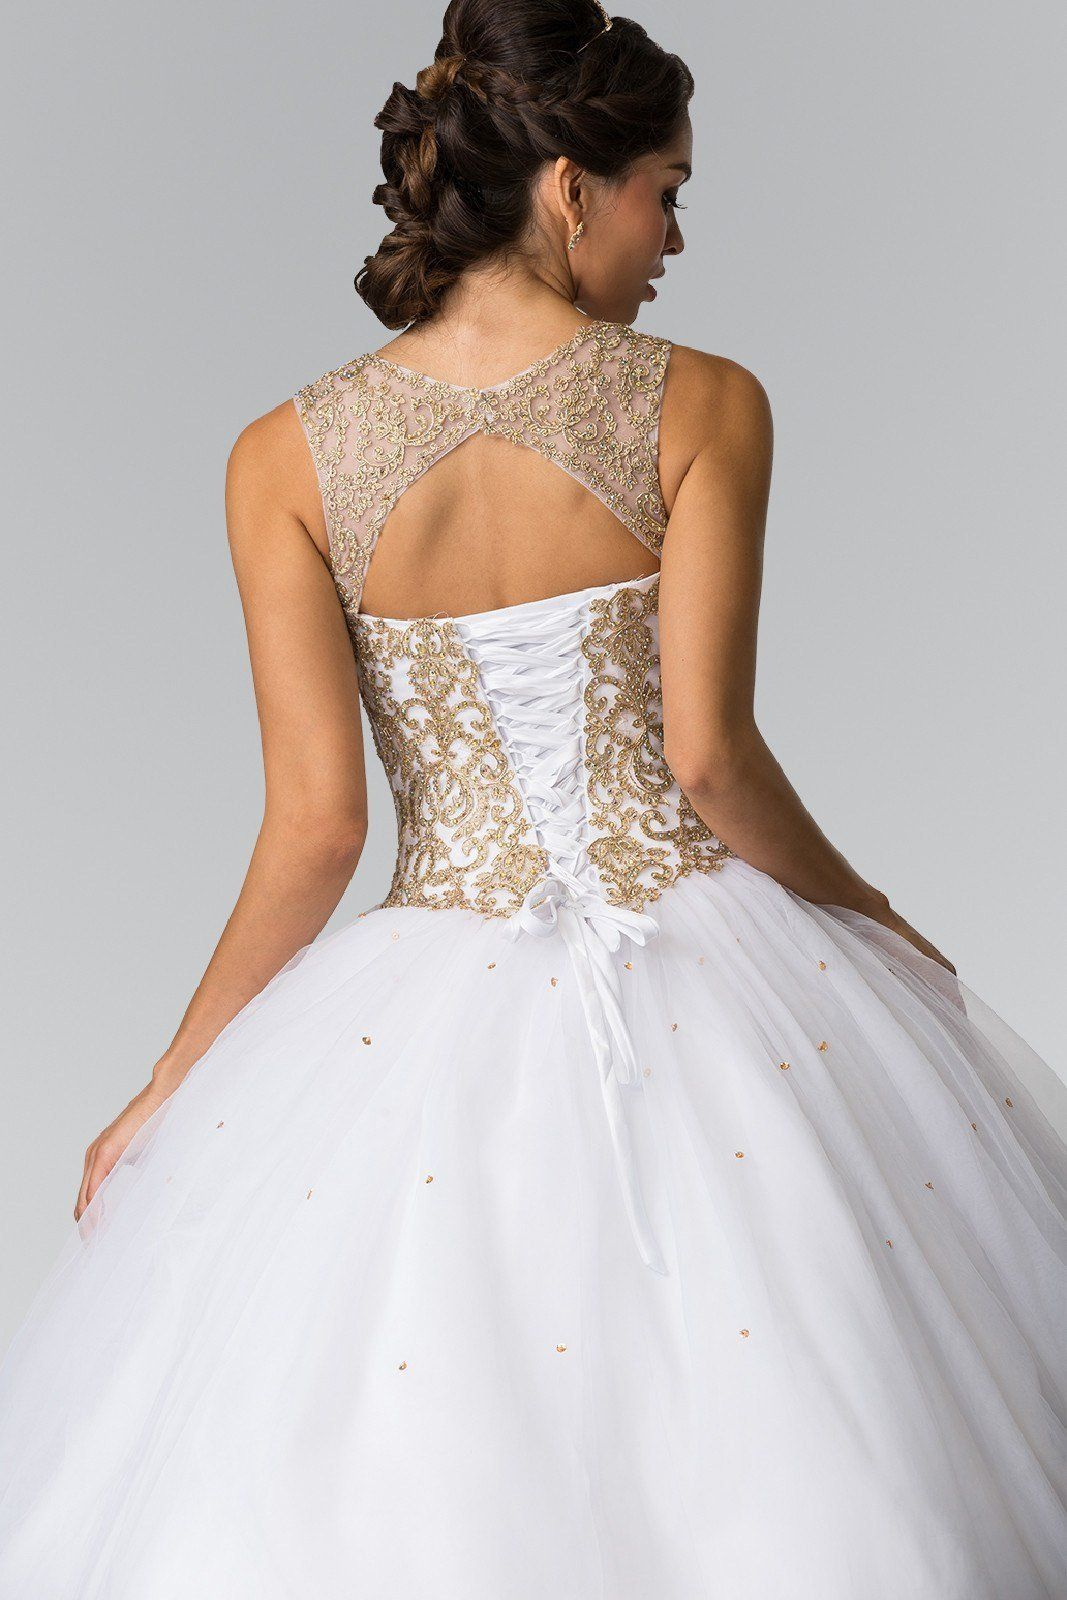 aed7b450ac Beautiful prom ball gown and Quinceanera dress. A gold lace bodice with  puffy tulle skirt